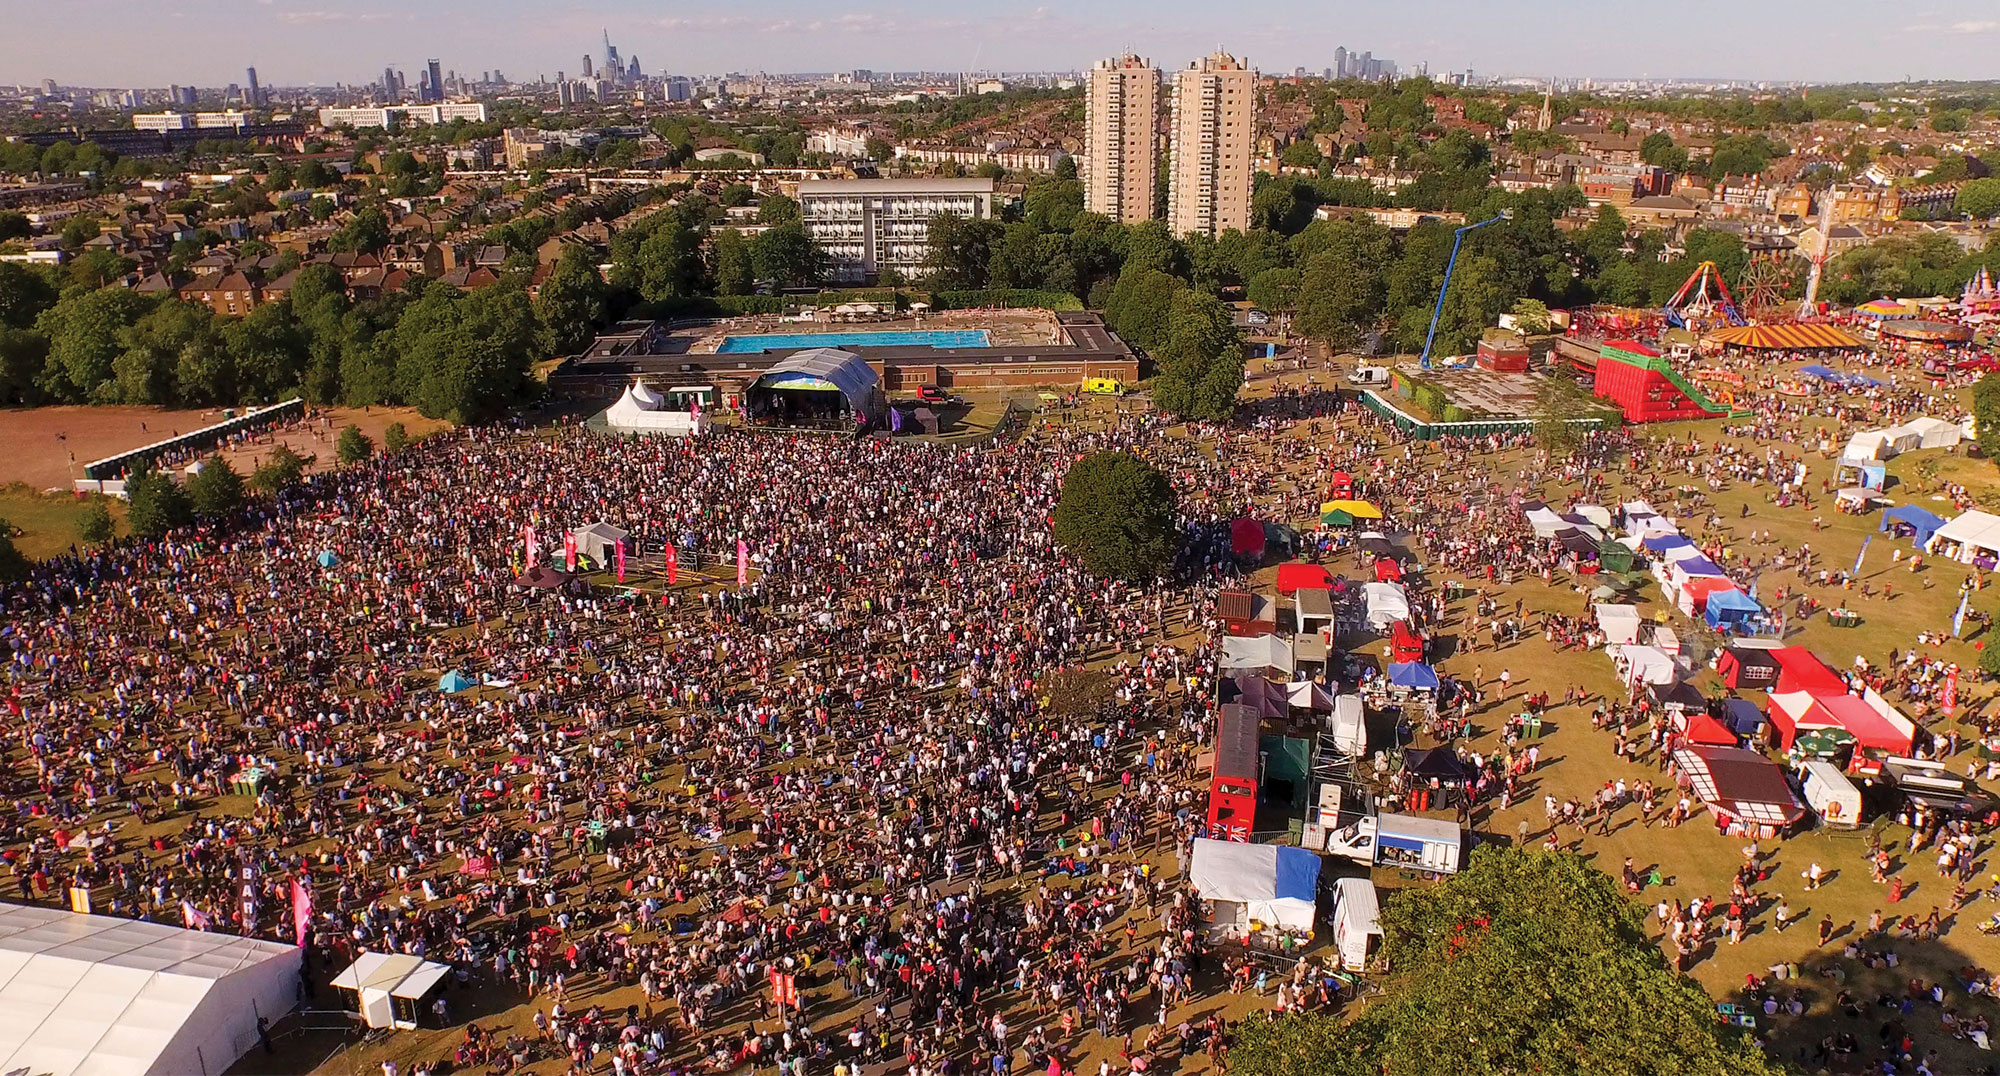 Lambeth Country Show drone shot of people and stalls